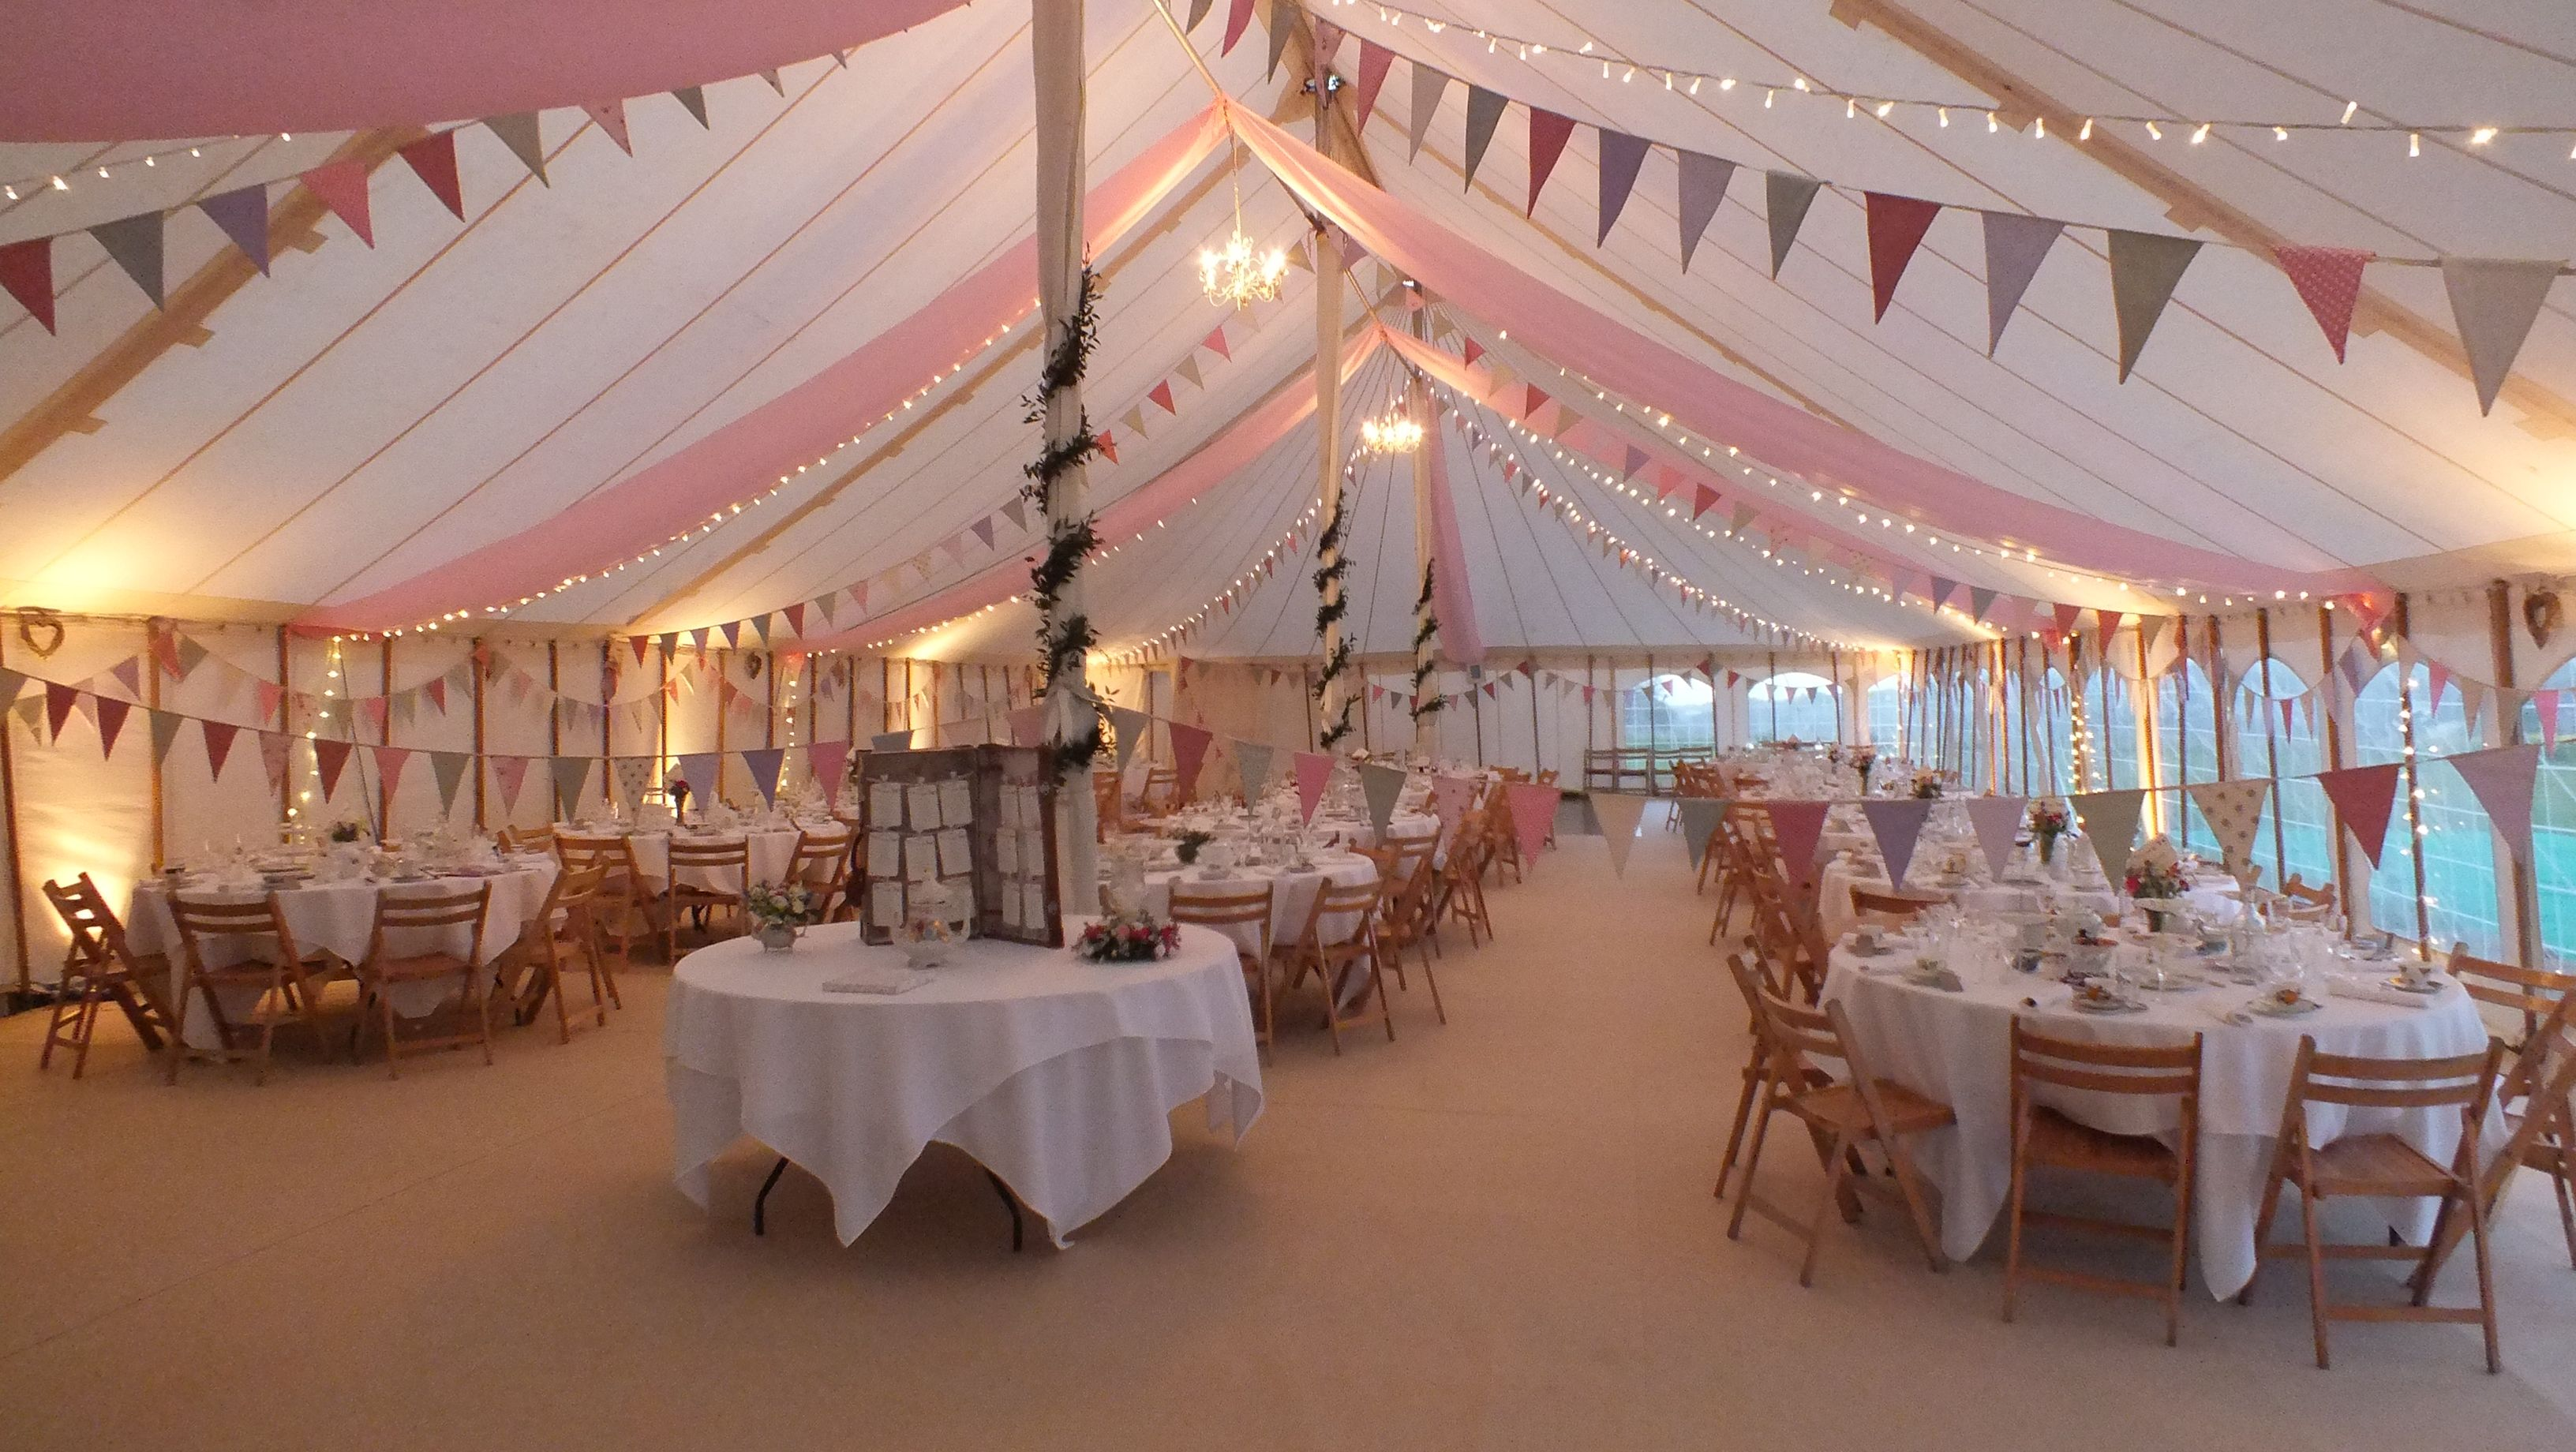 Wedding marquee decoration ideas  Fairy lights and bunting add a certain sparkle to your wedding day